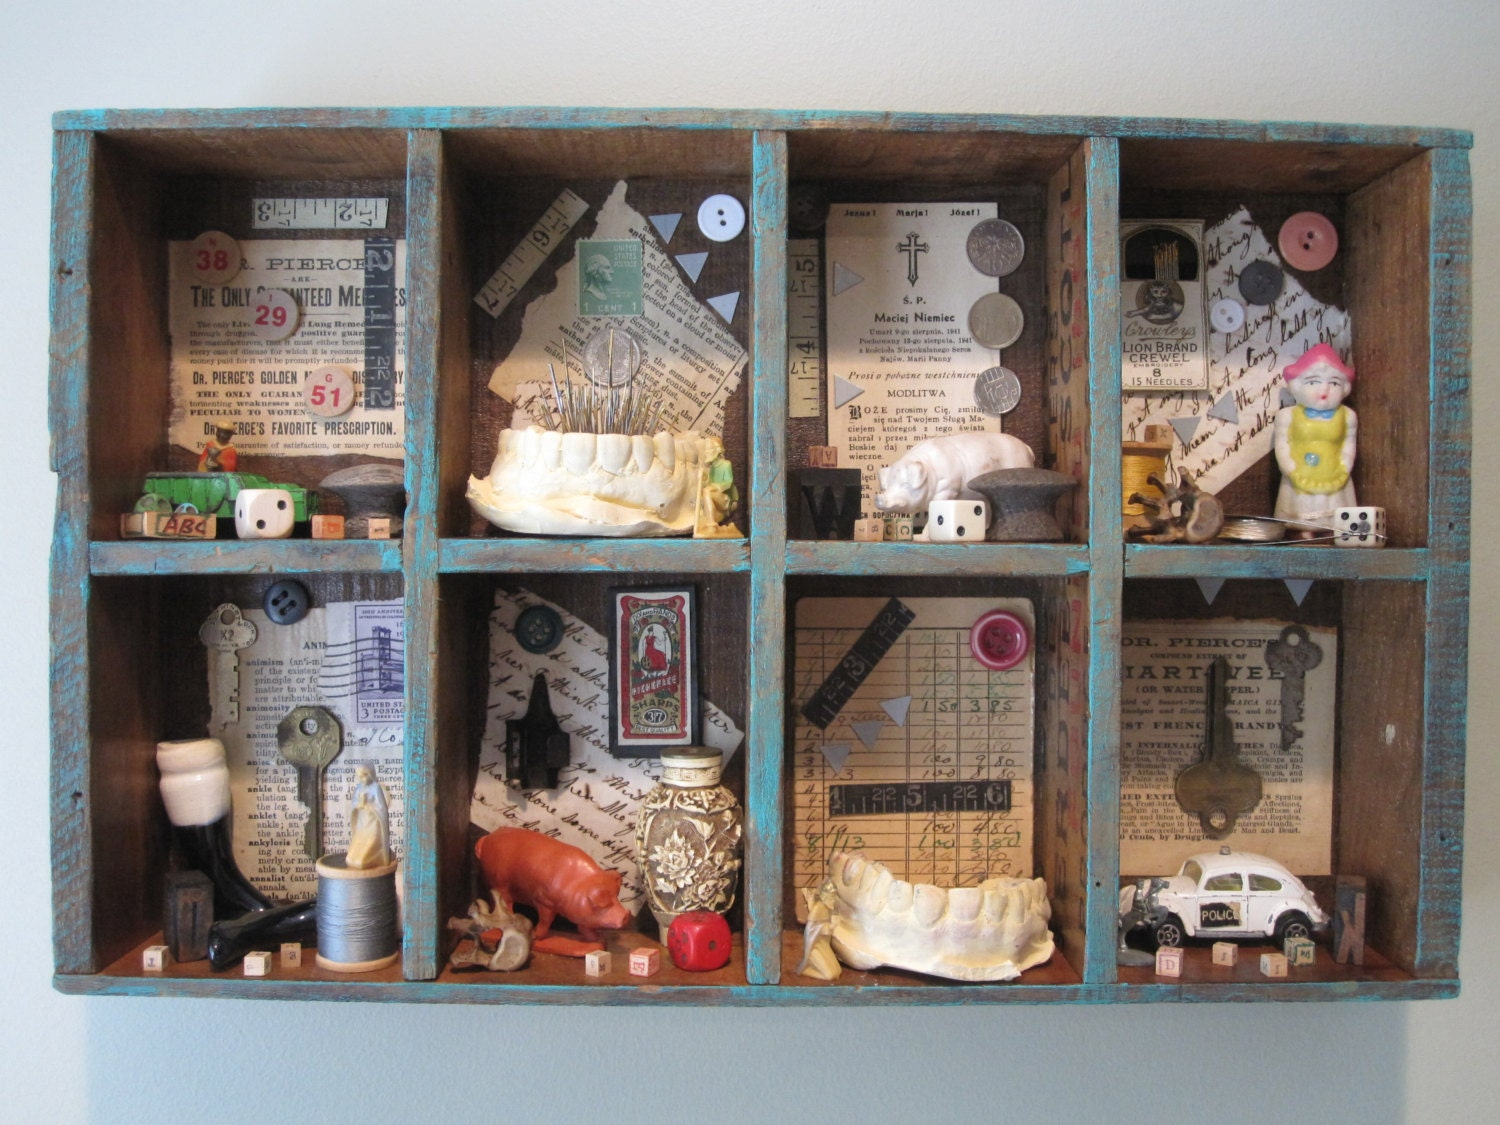 Mixed media assemblage found object art creepy home decor Oddities home decor